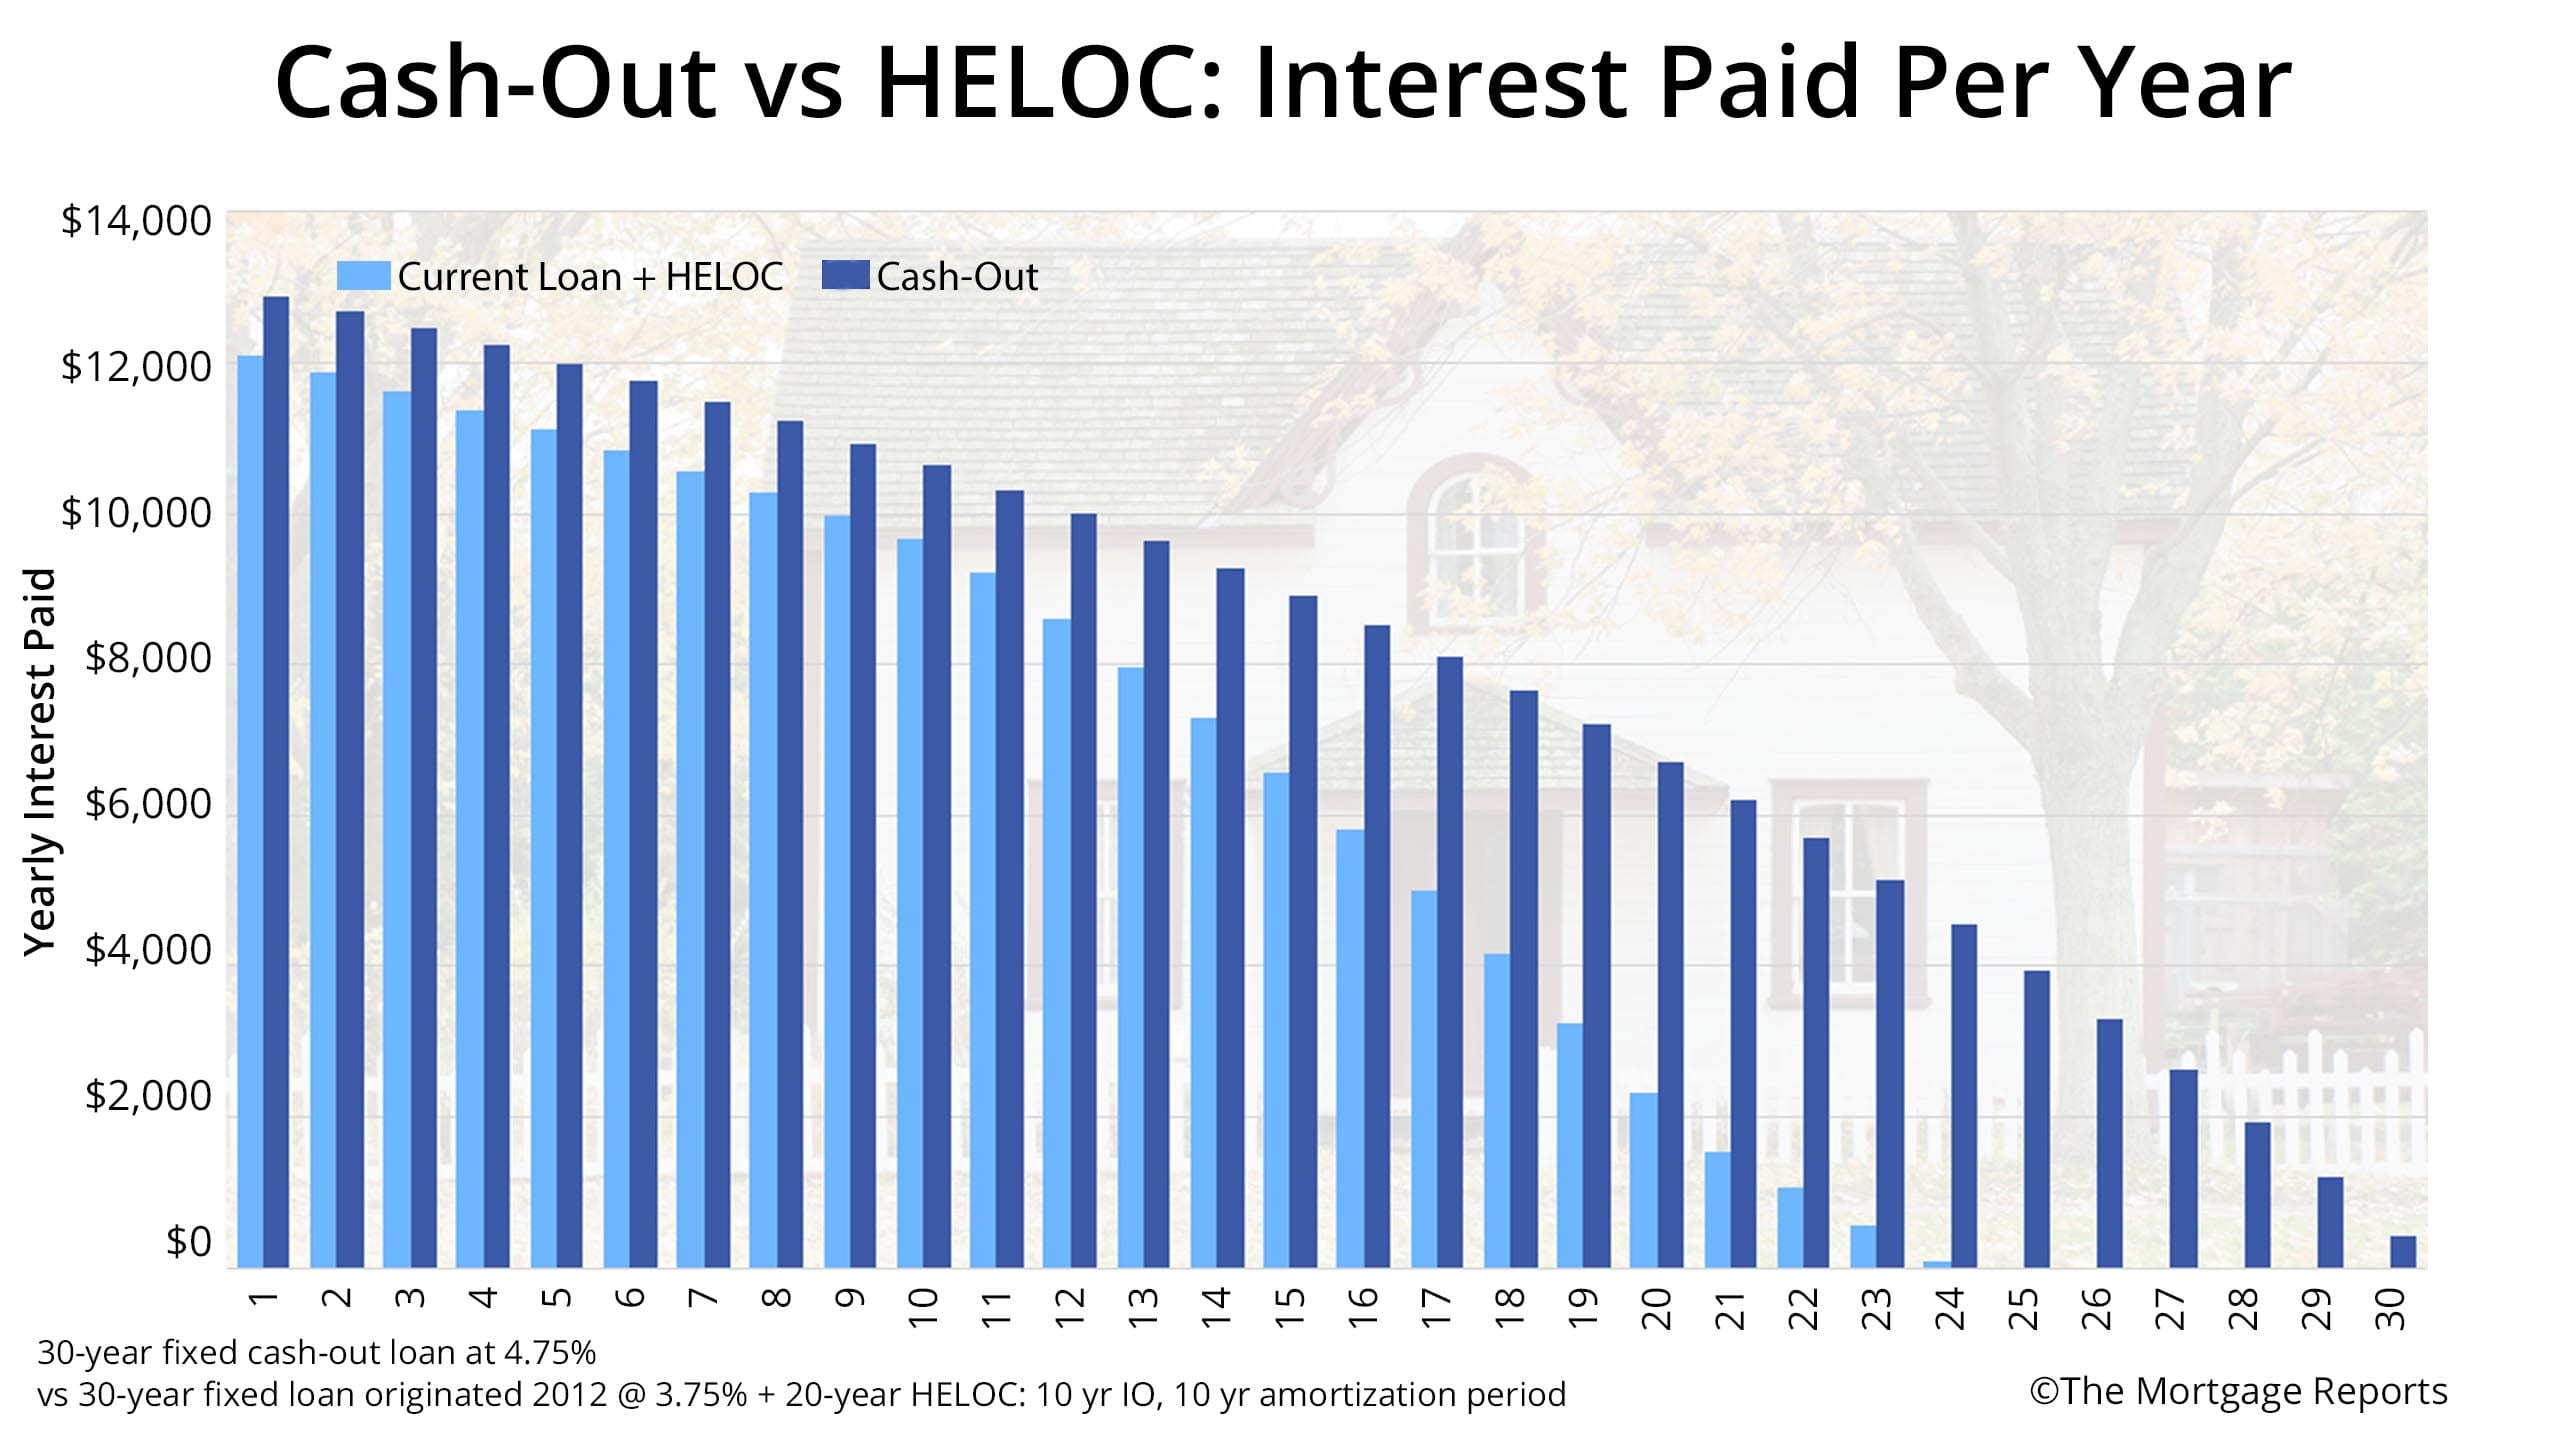 Cash-Out vs Current Loan plus HELOC - Interest Paid Per Year